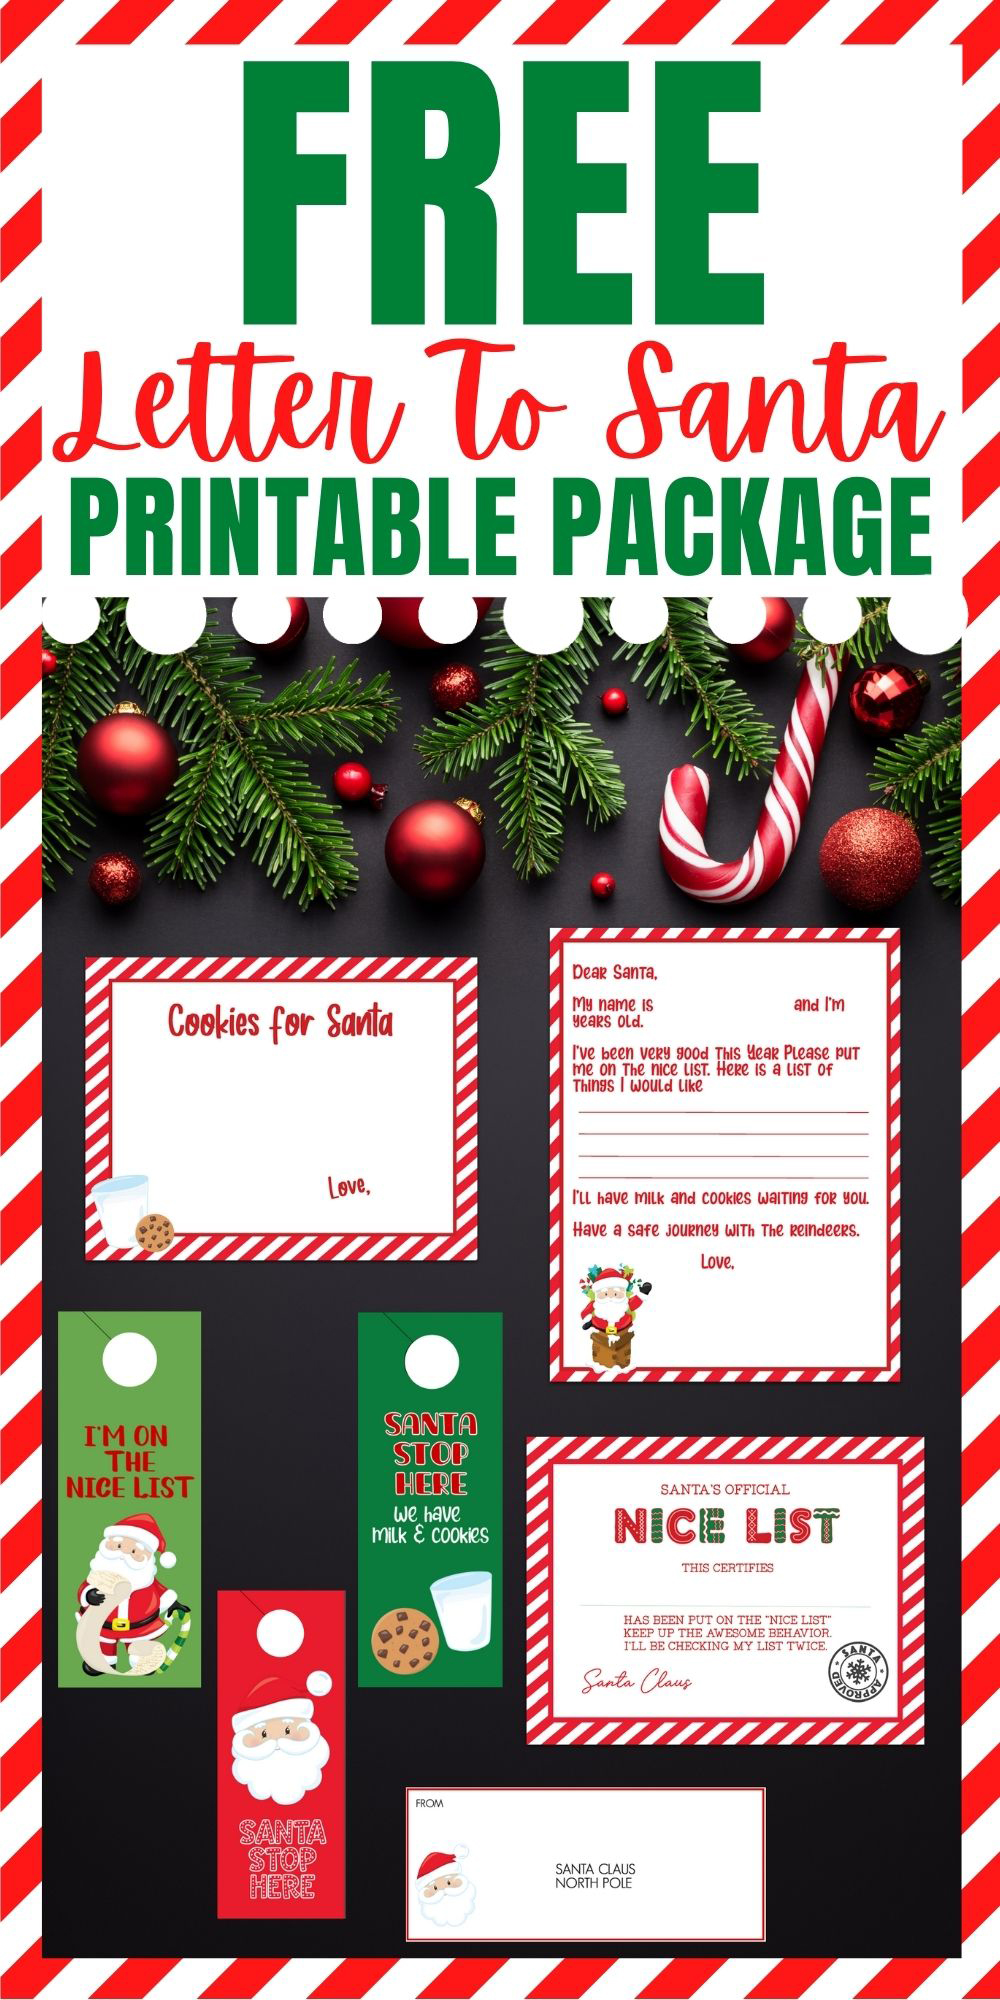 Letter To Santa Printable Package